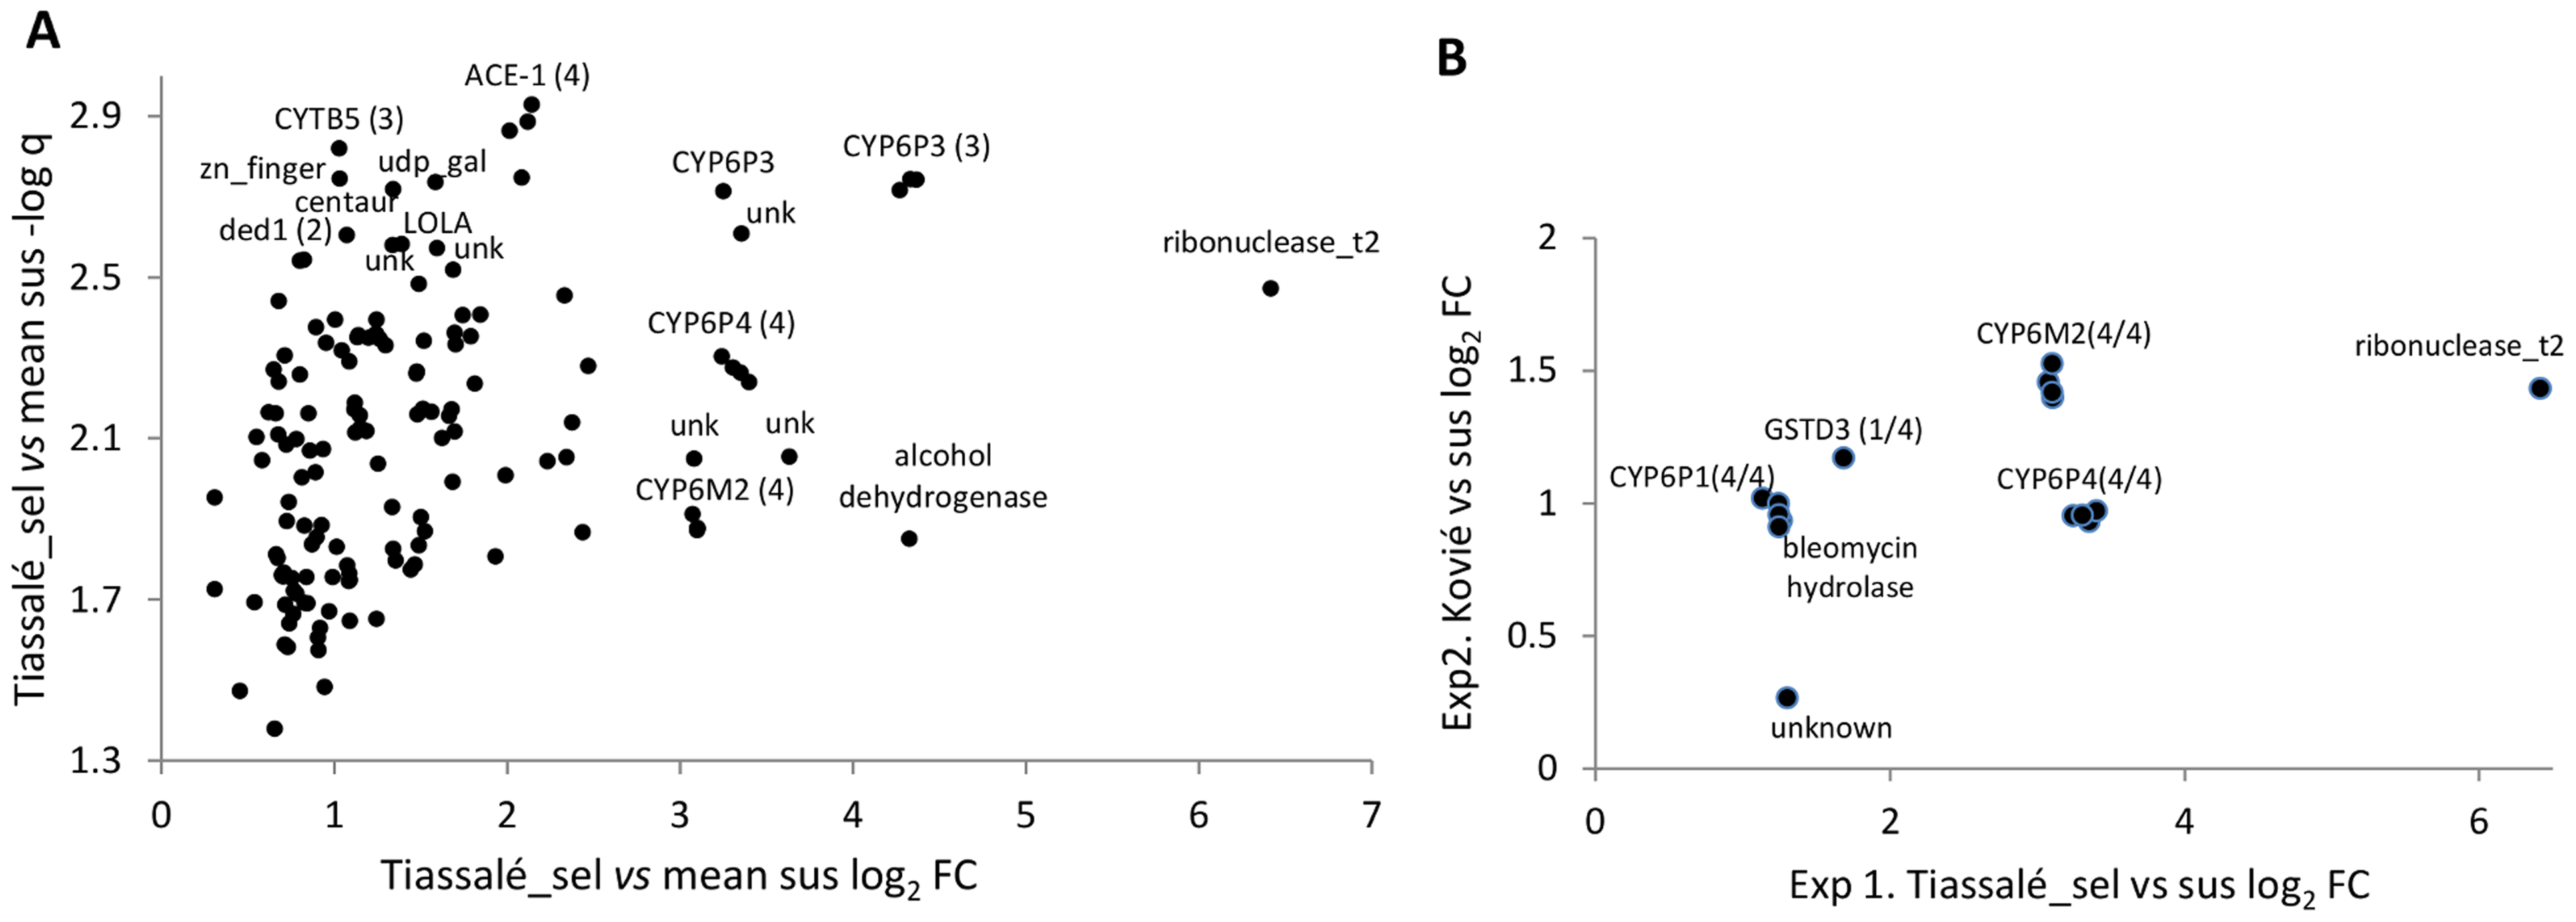 Genes significantly overexpressed (relative to susceptible samples) in (A) Tiassalé bendiocarb resistant samples in Exp1, and (B). both Tiassalé and Kovié samples.